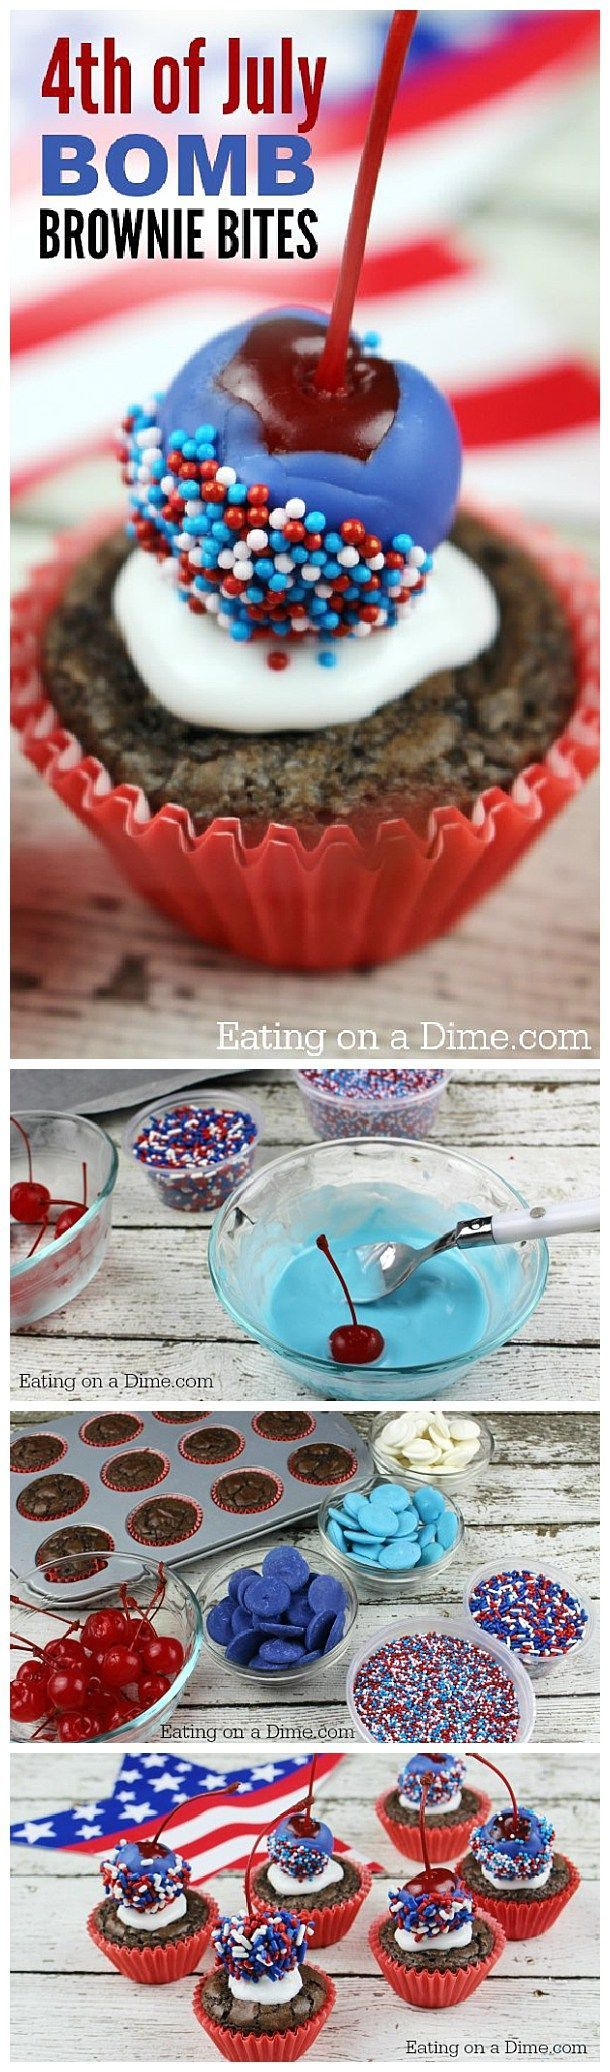 Do it yourself 4th of july the best diy patriotic red white and do it yourself 4th of july the best diy patriotic red white and blue holiday party planning ideas solutioingenieria Gallery